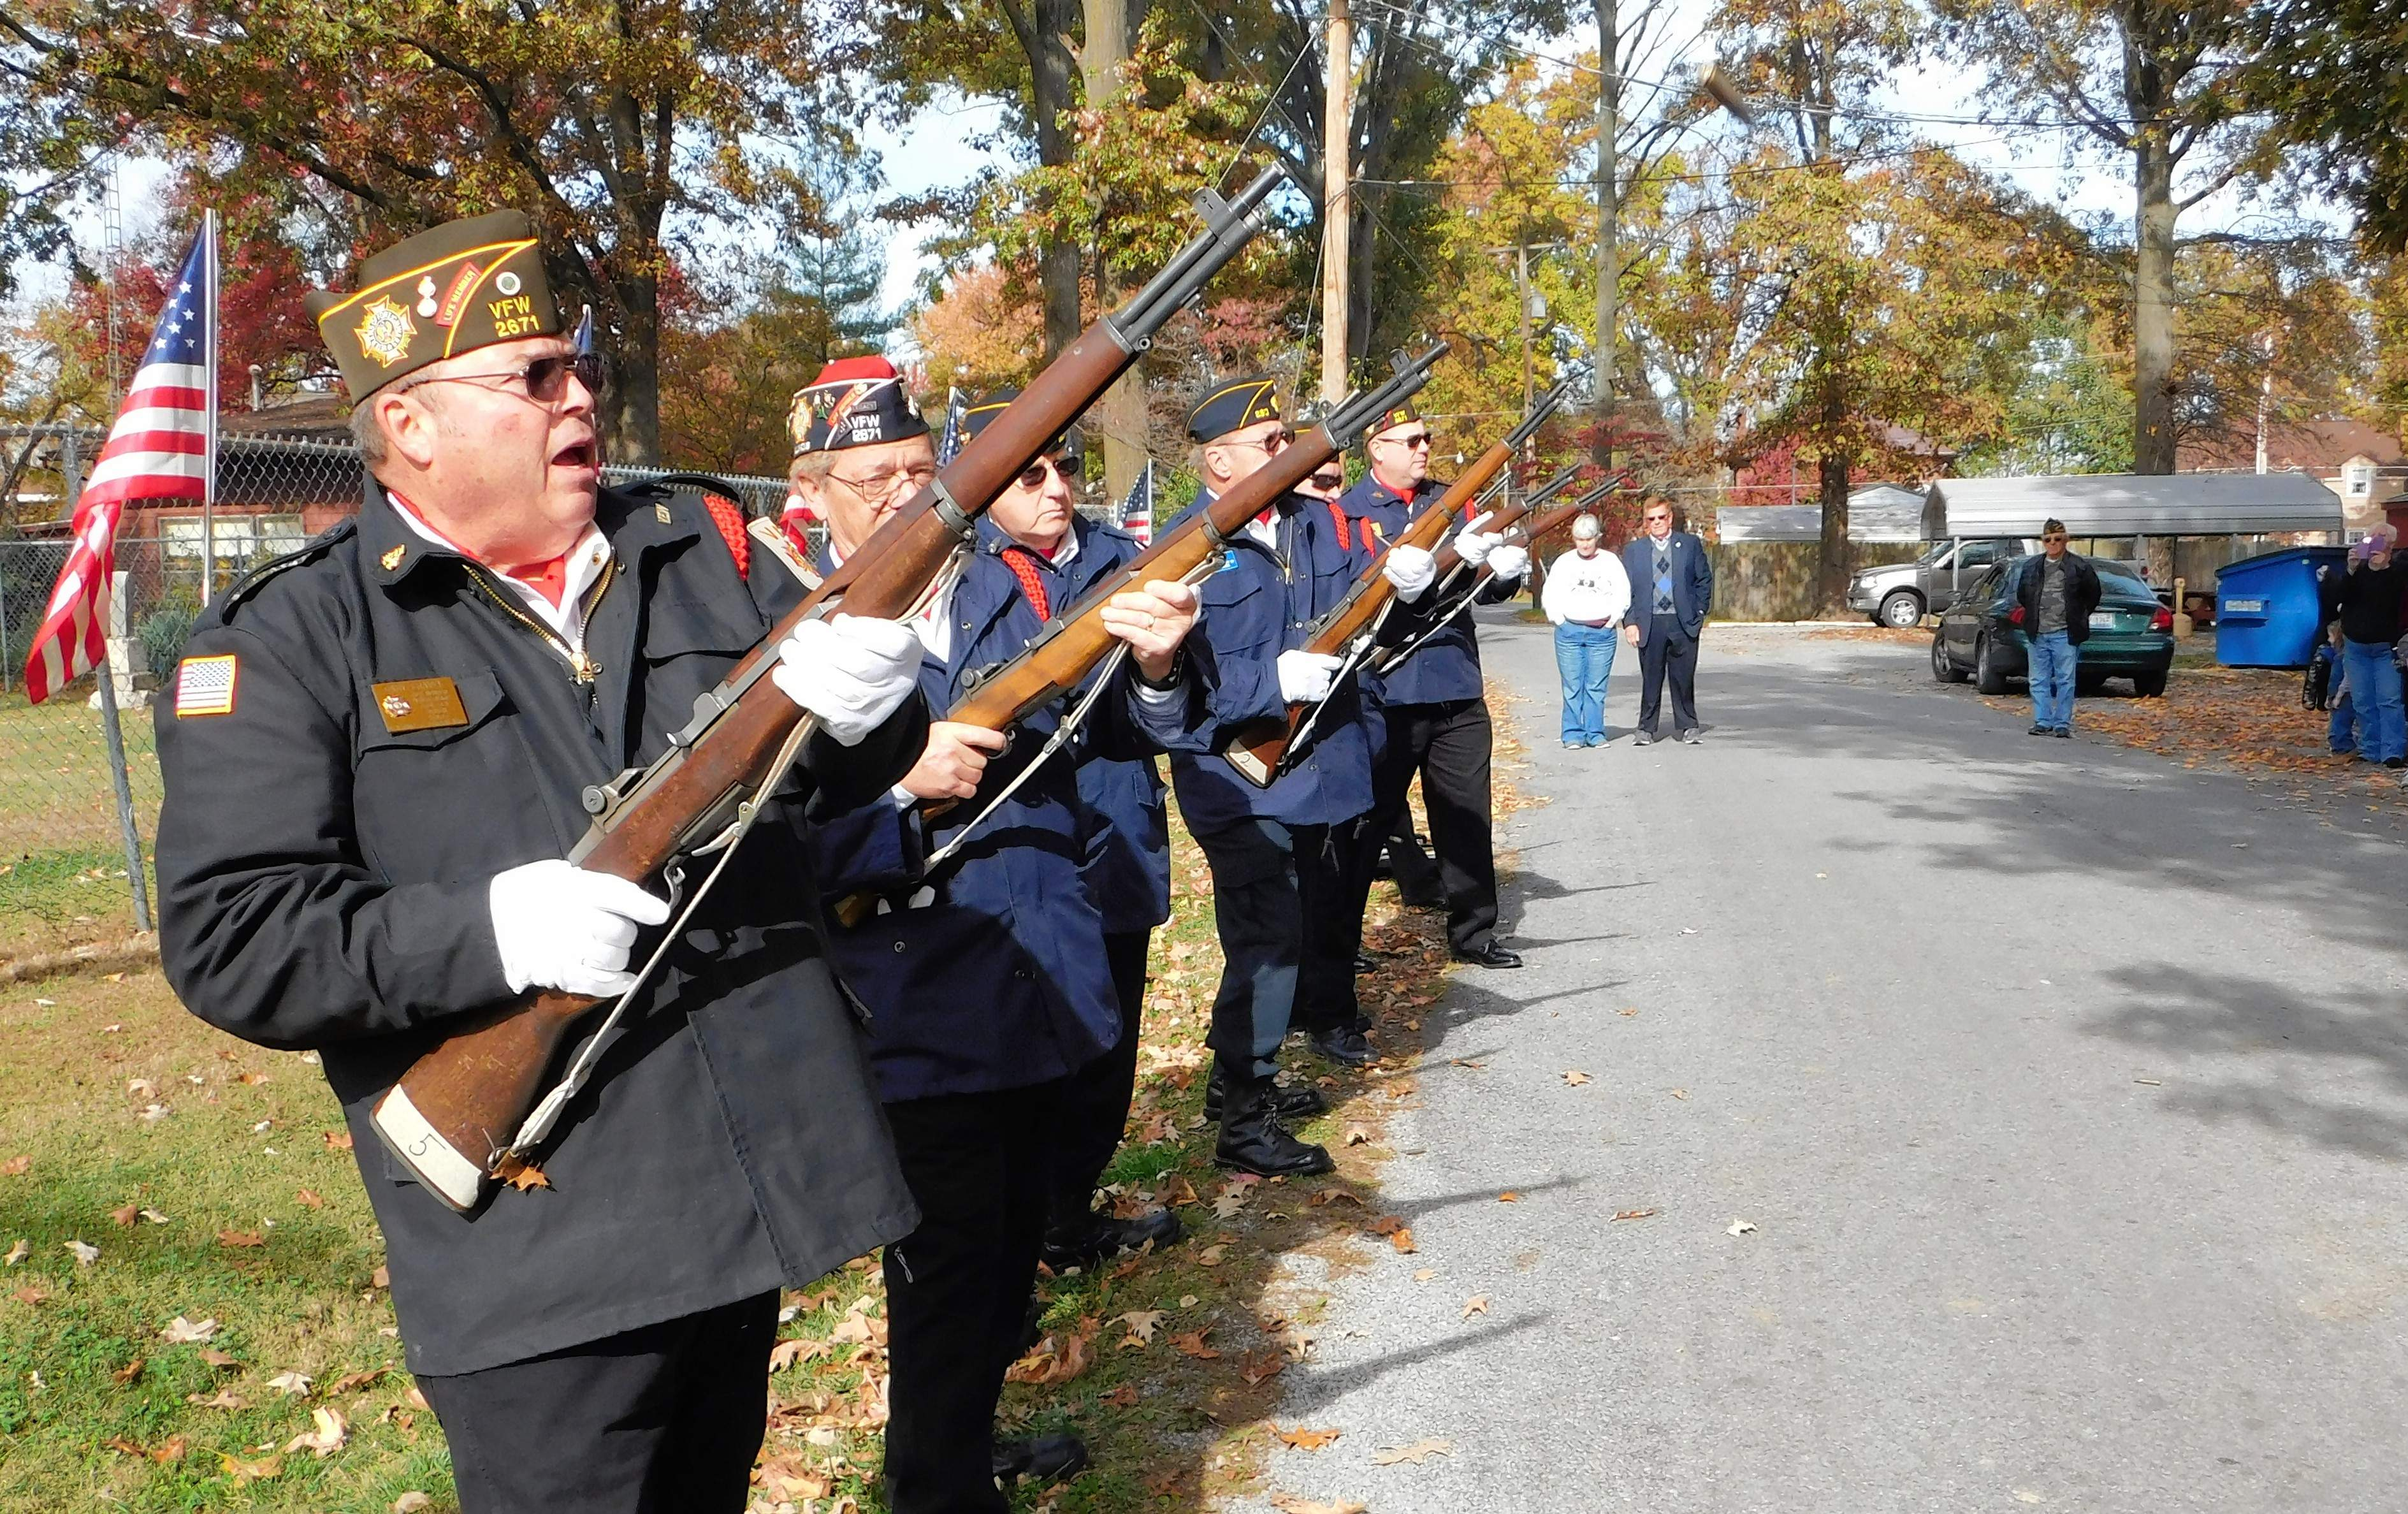 Members of the Honor Guard perform the traditional 21-gun salute outside the entrance to Benton's Civil War Cemetery. For the full story, see page 3.